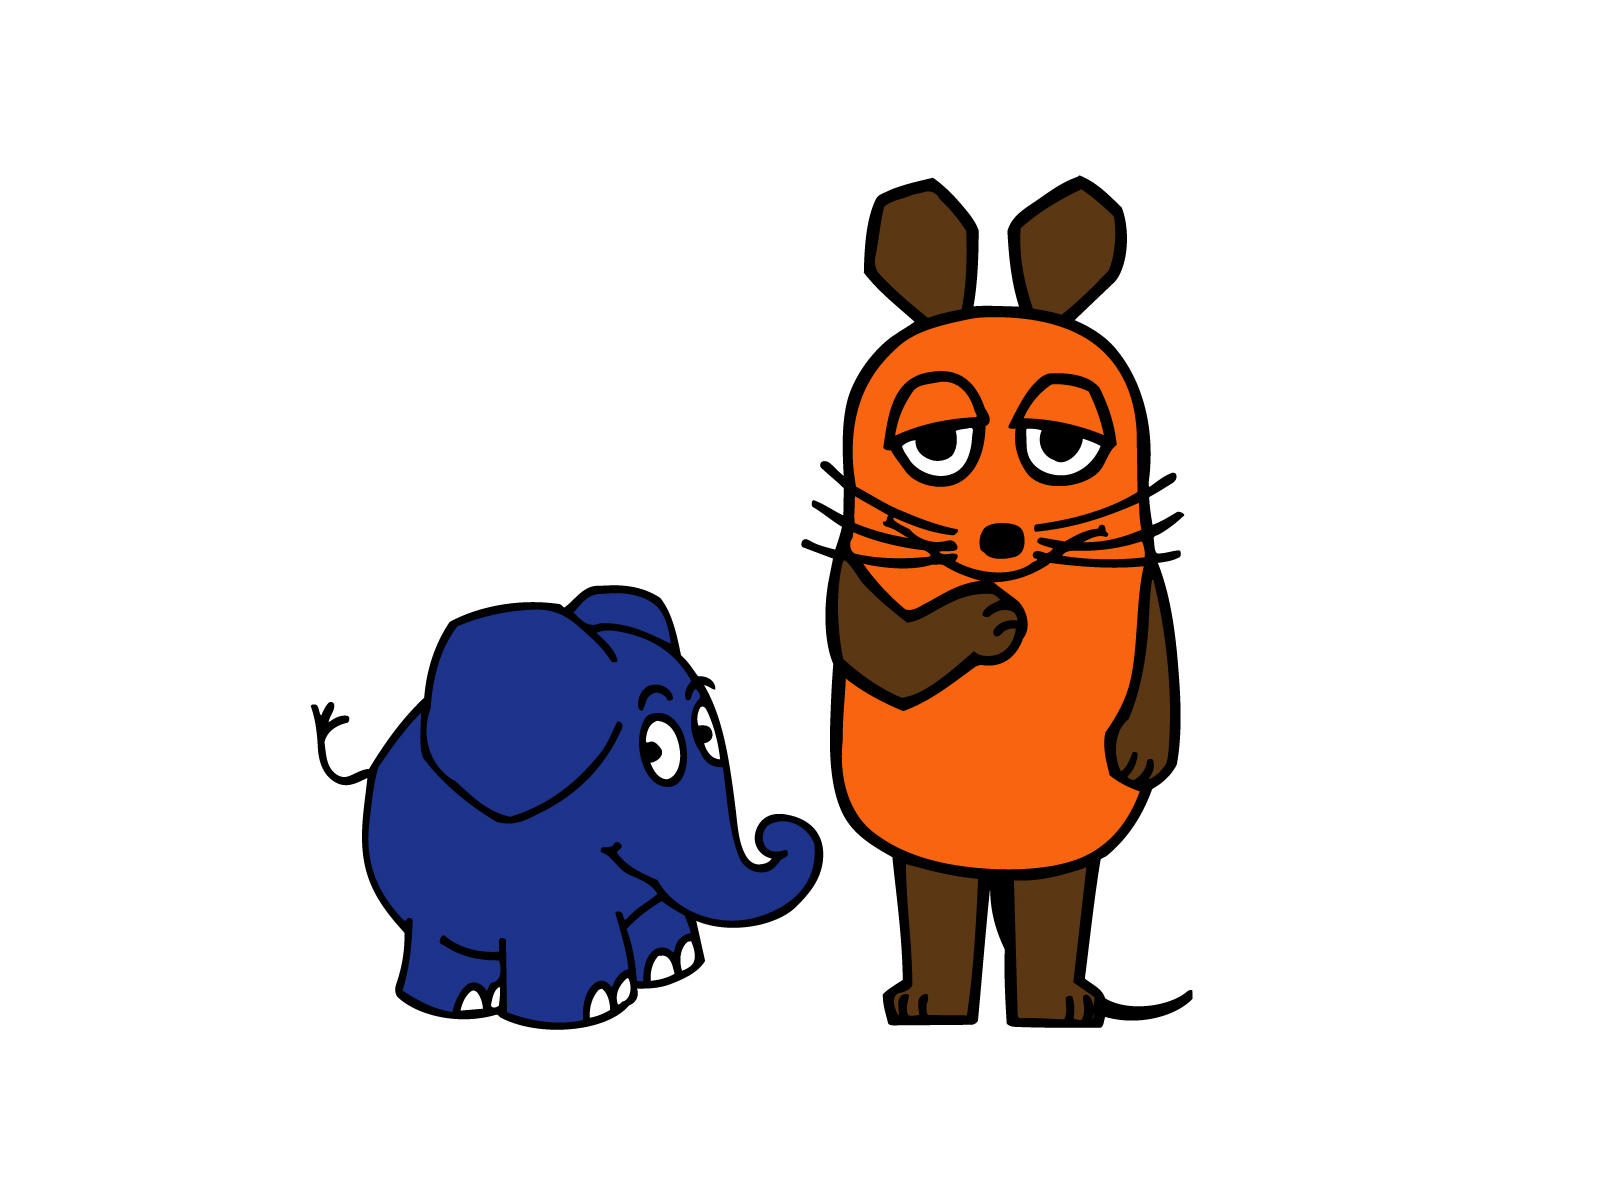 Maus und Elefant w by rooot on DeviantArt